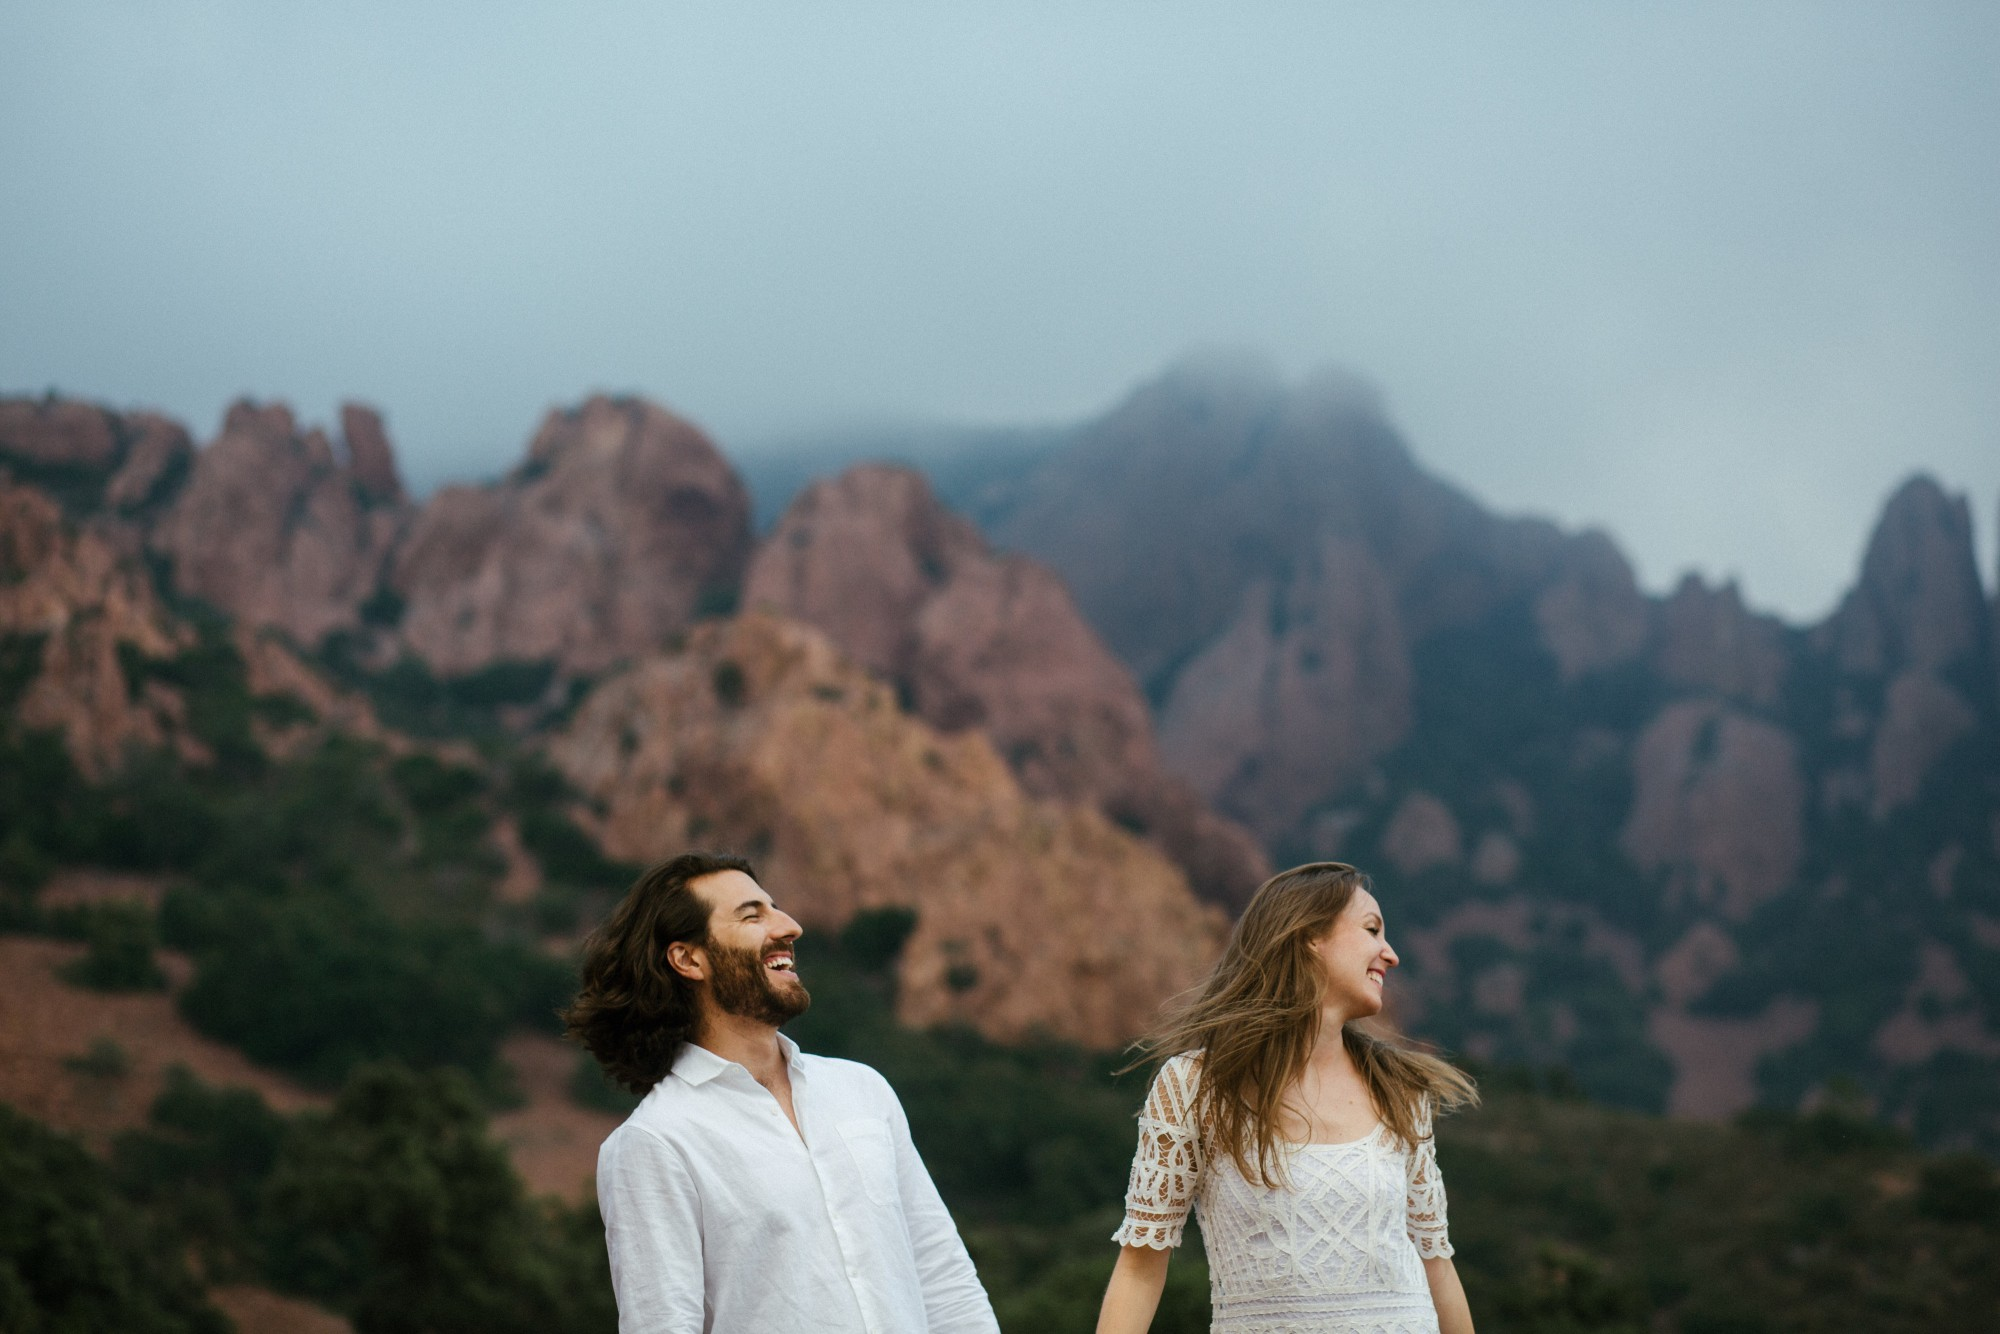 hair-wind-couple-mountains